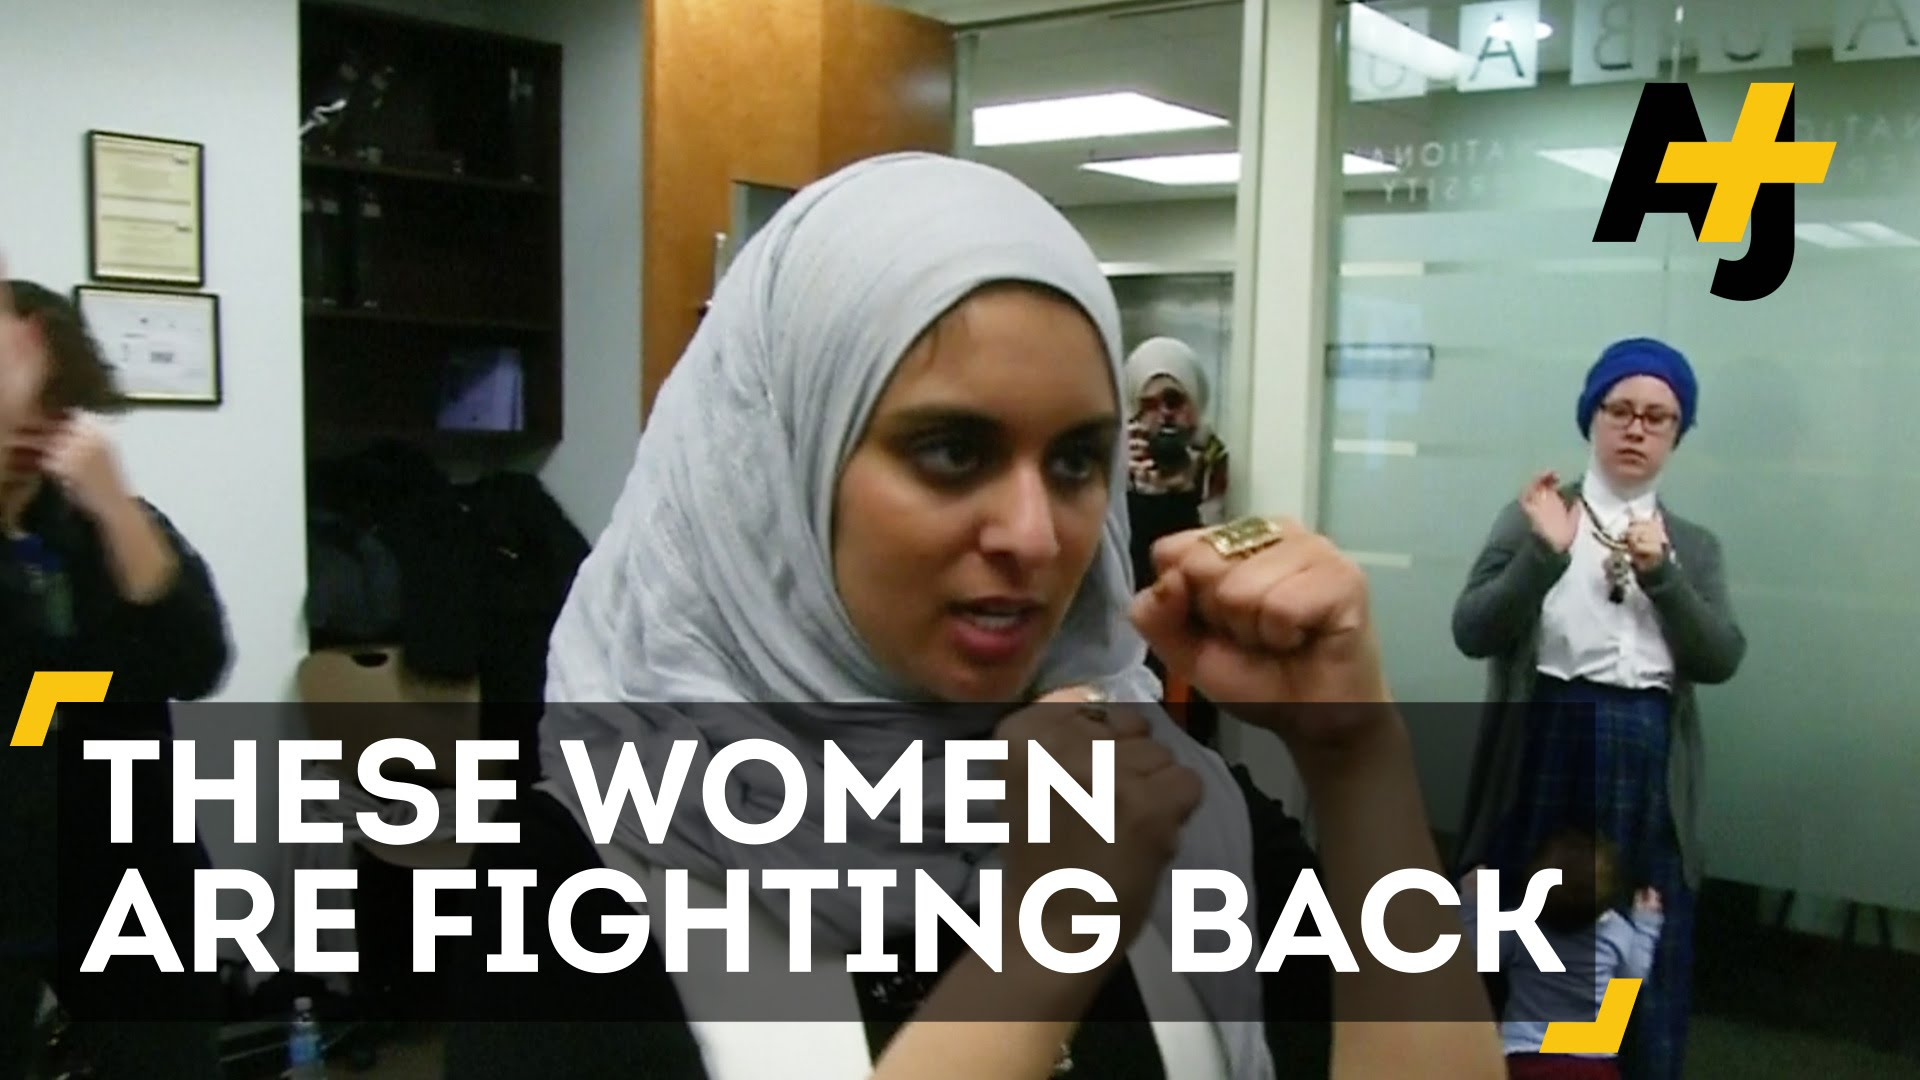 Muslim Women Train to Take on Attackers